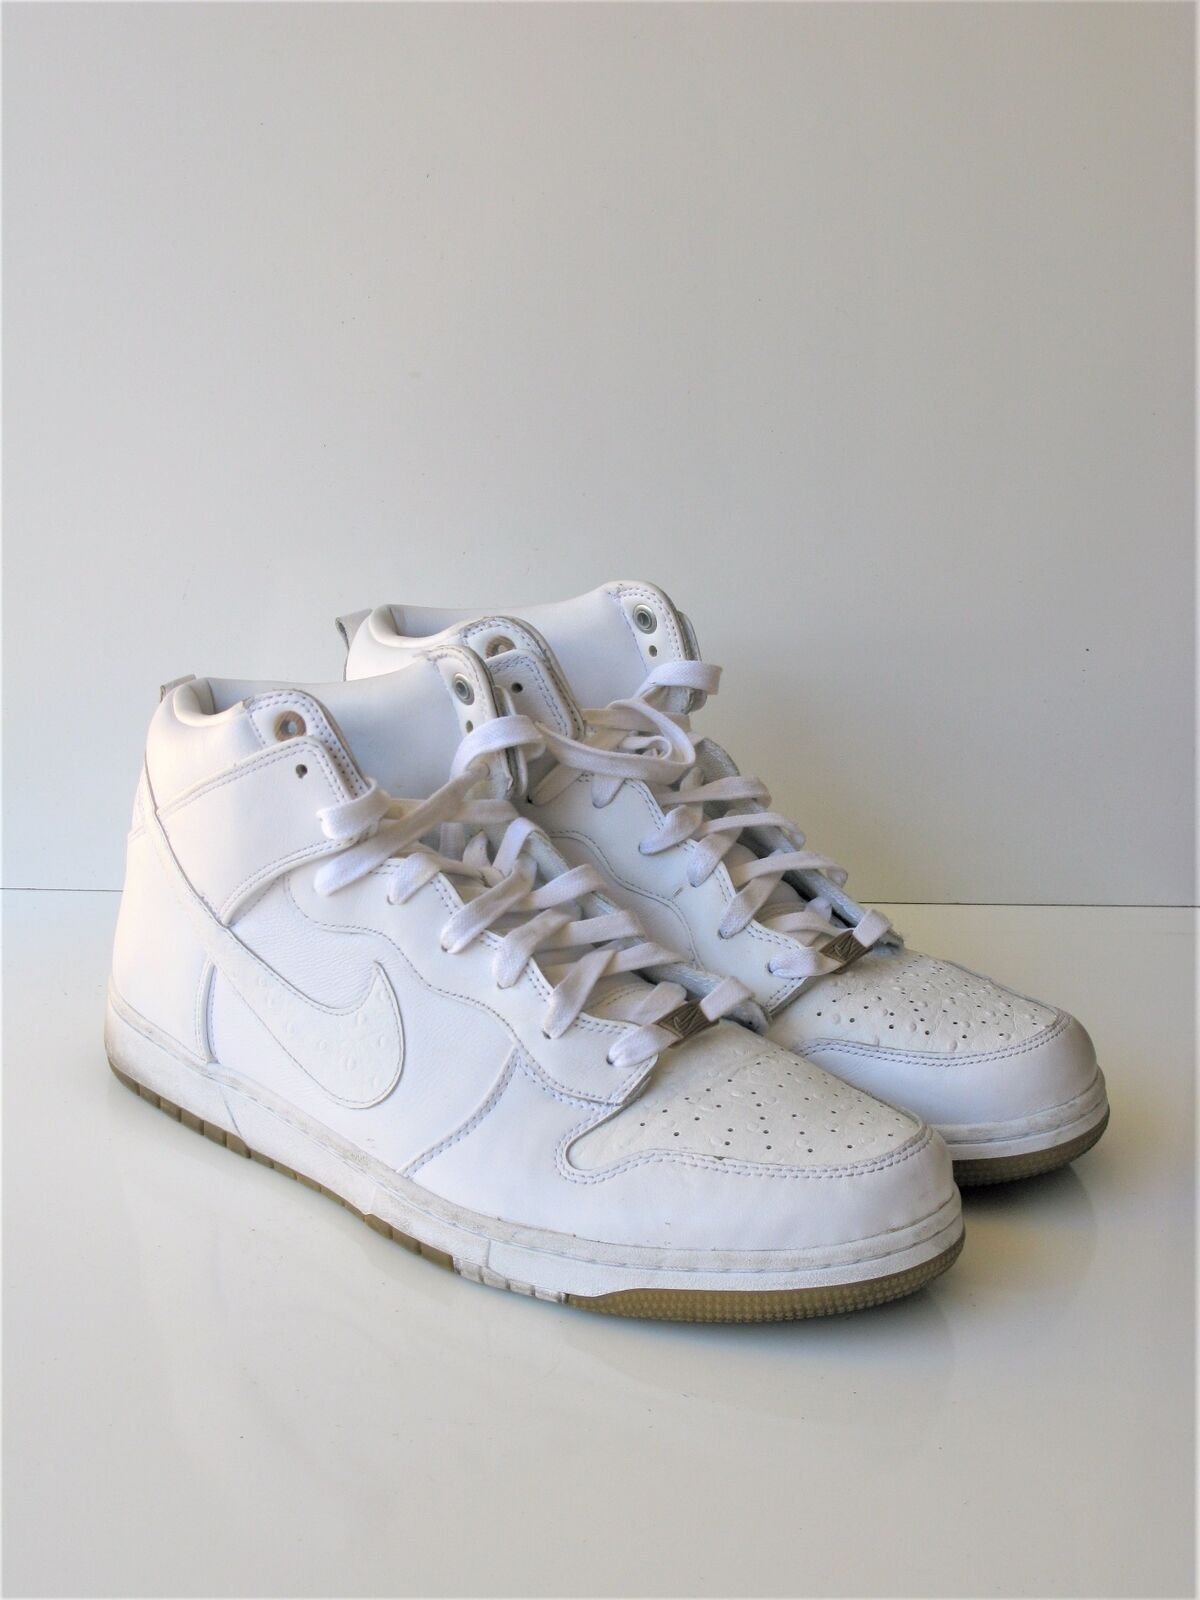 Basketball shoes Nike Dunk CMFT Prm Qs White White Athletic Sneakers 14  200